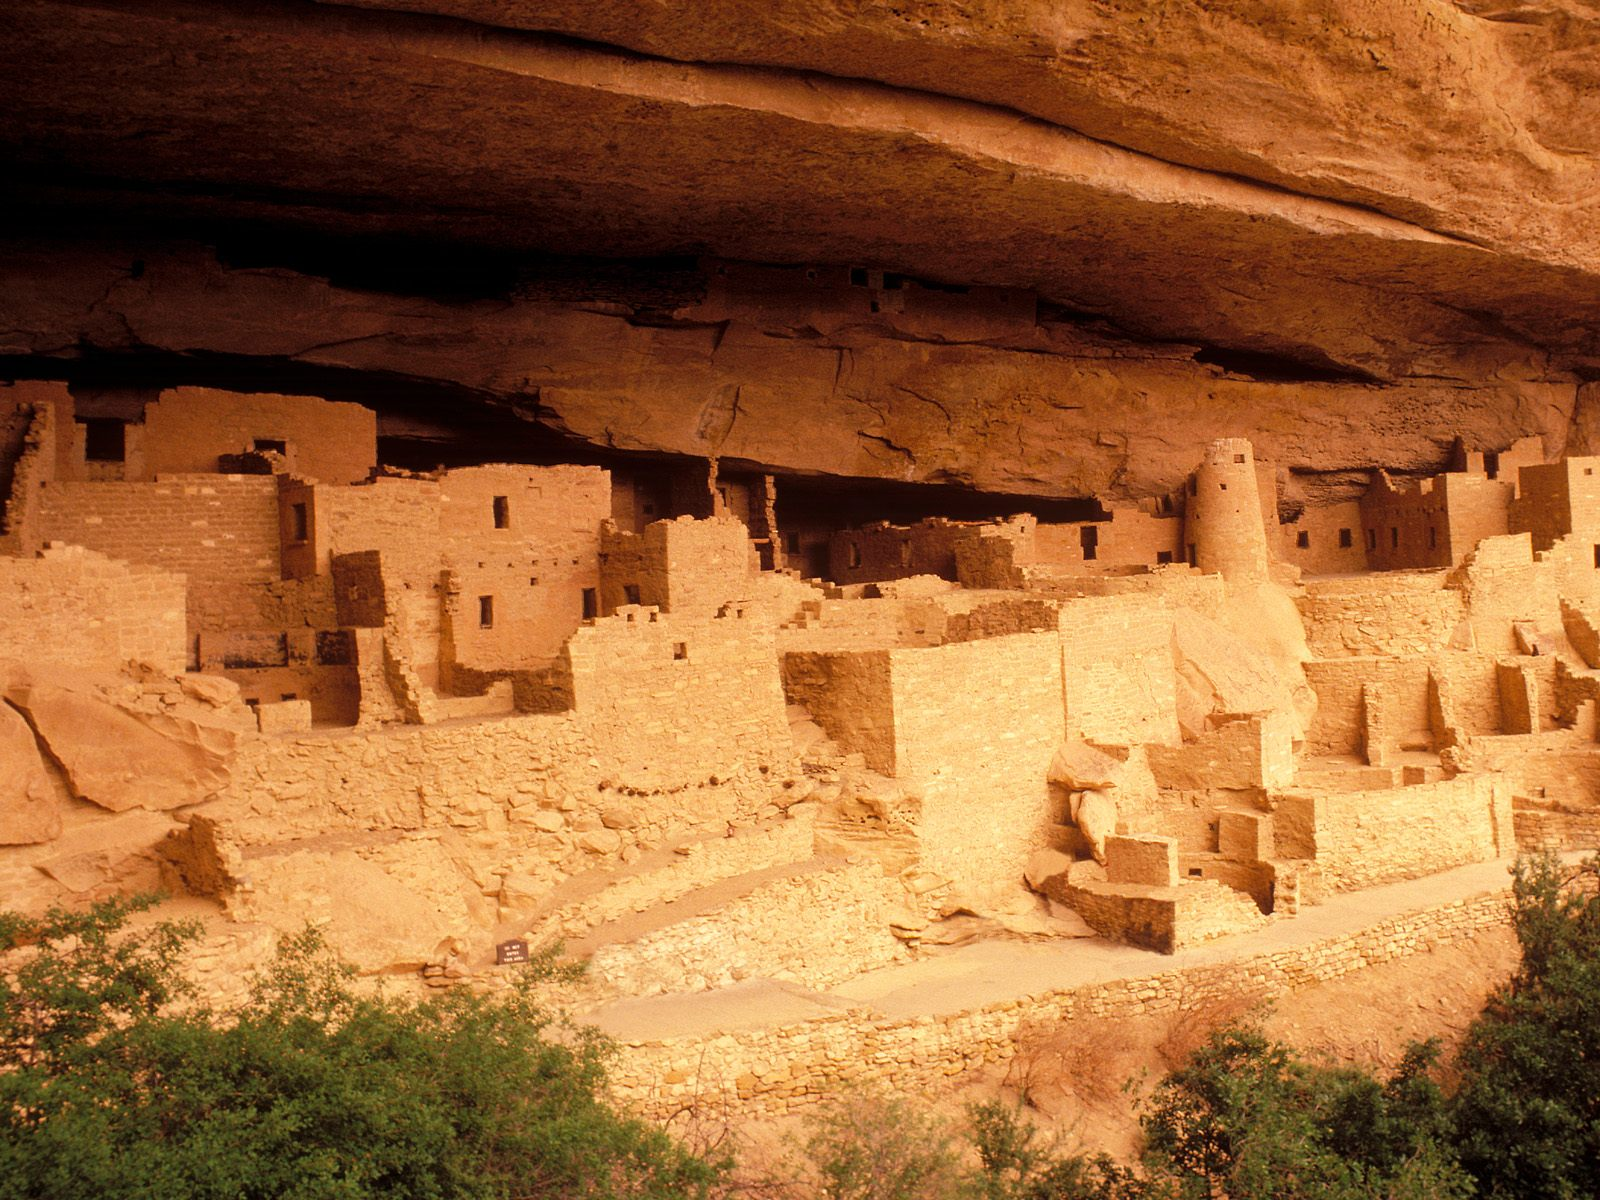 Free Scenes of the World, Anasazi Ruins, Protect Them So You Can Enjoy Longer 1600X1200 free wallpaper download